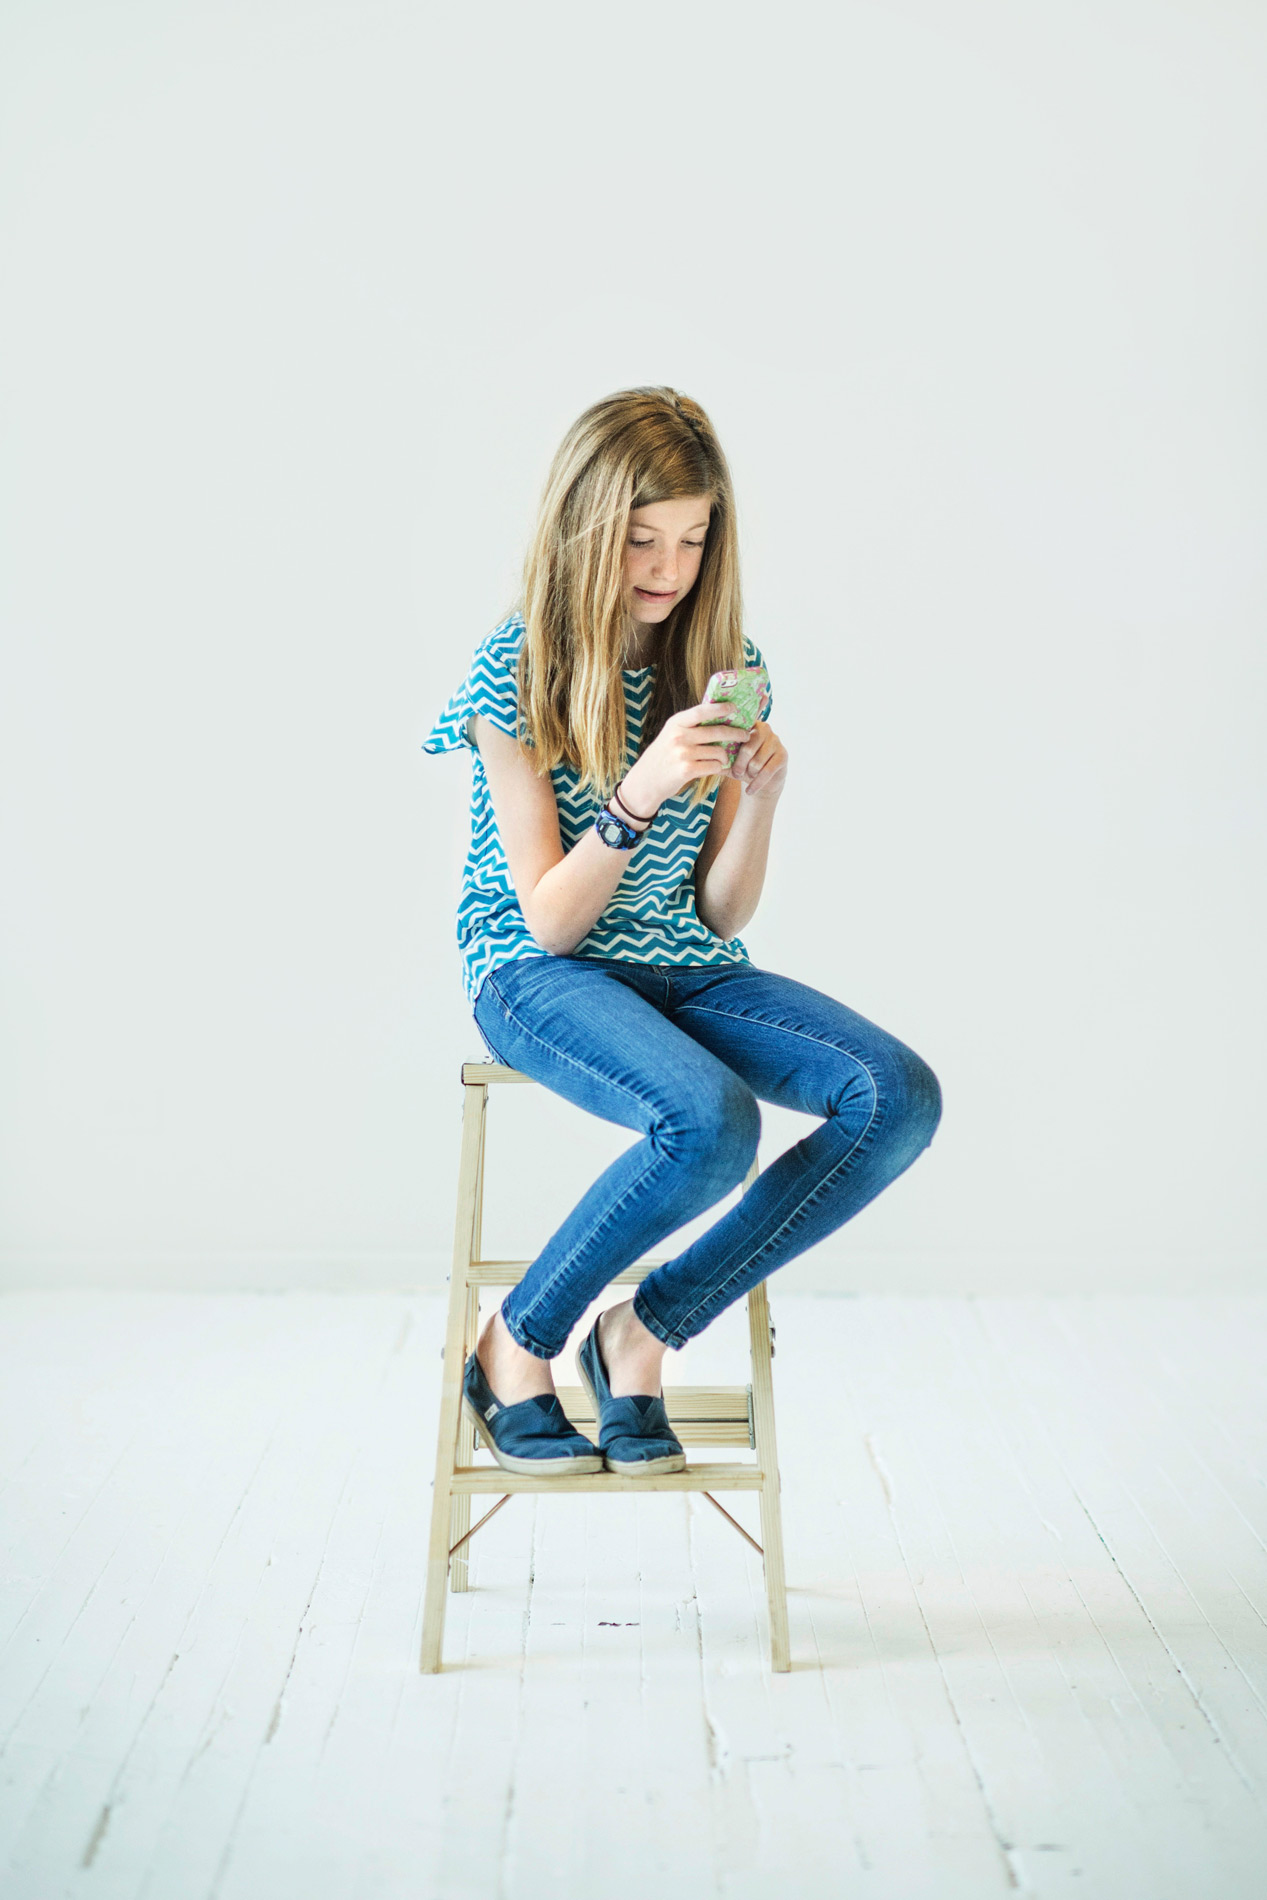 tween looking at cell phone